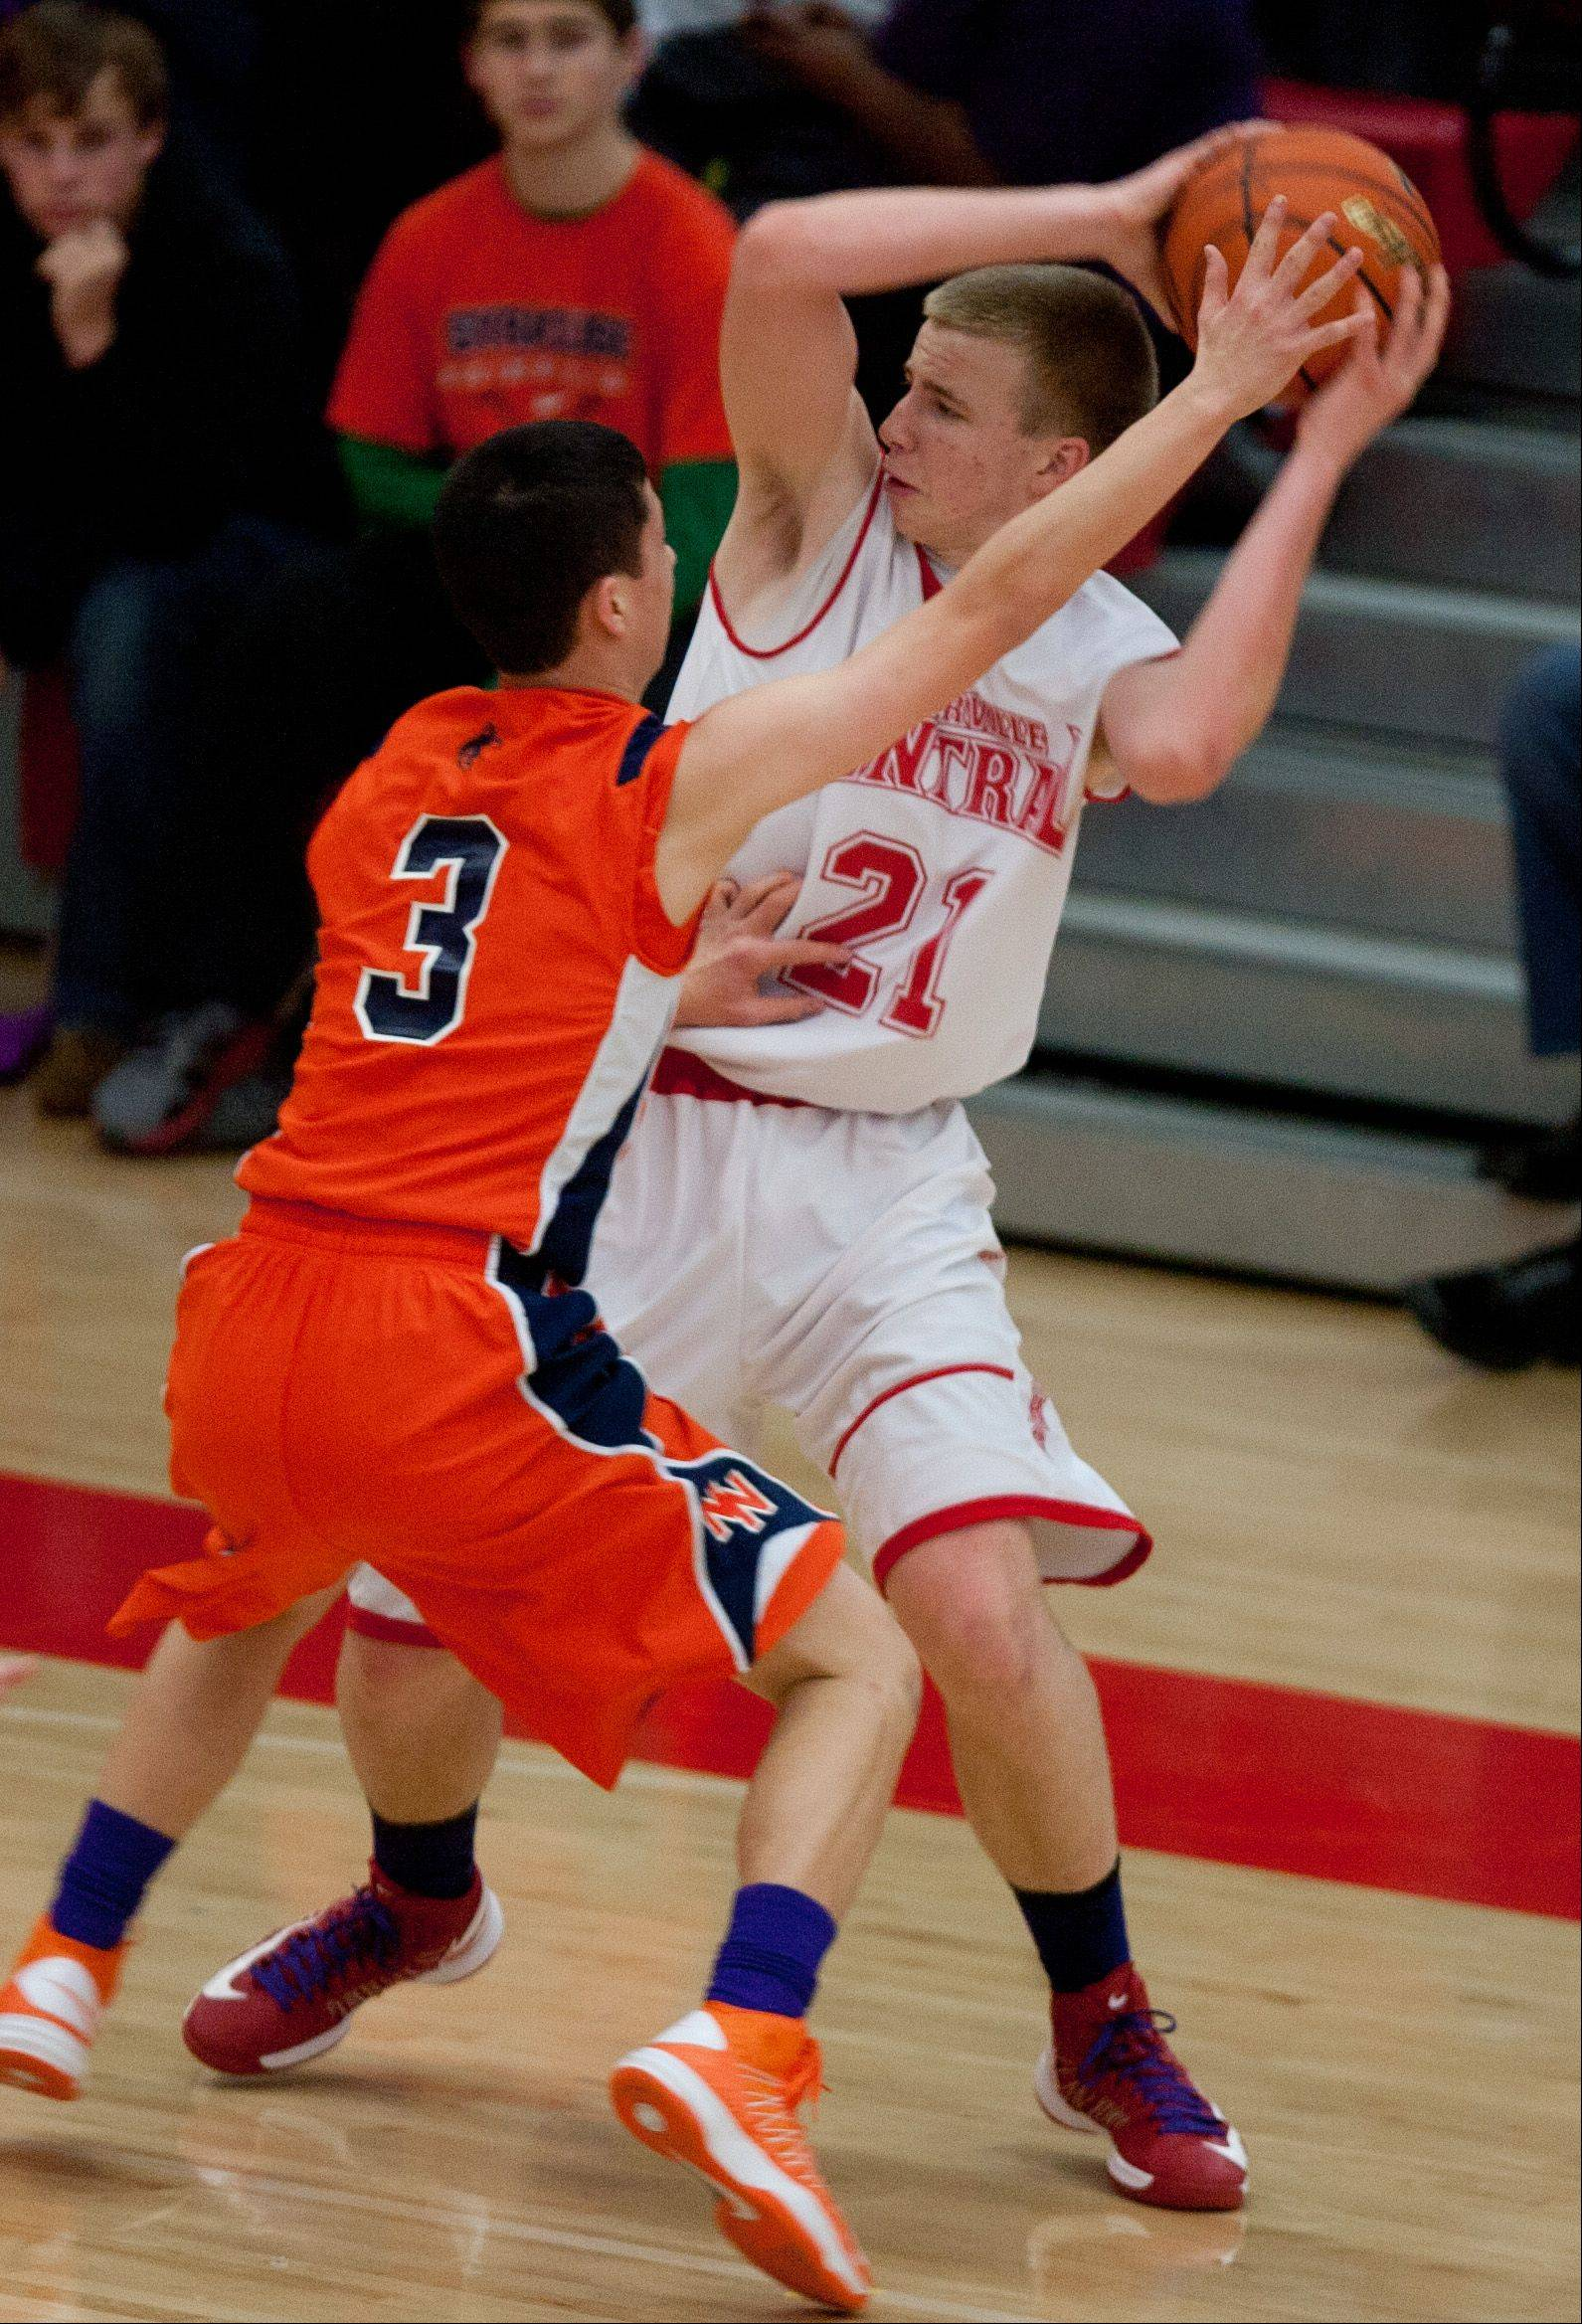 Naperville Central's Mike Blaszczyk looks to pass around Naperville North's Jayson Winick.